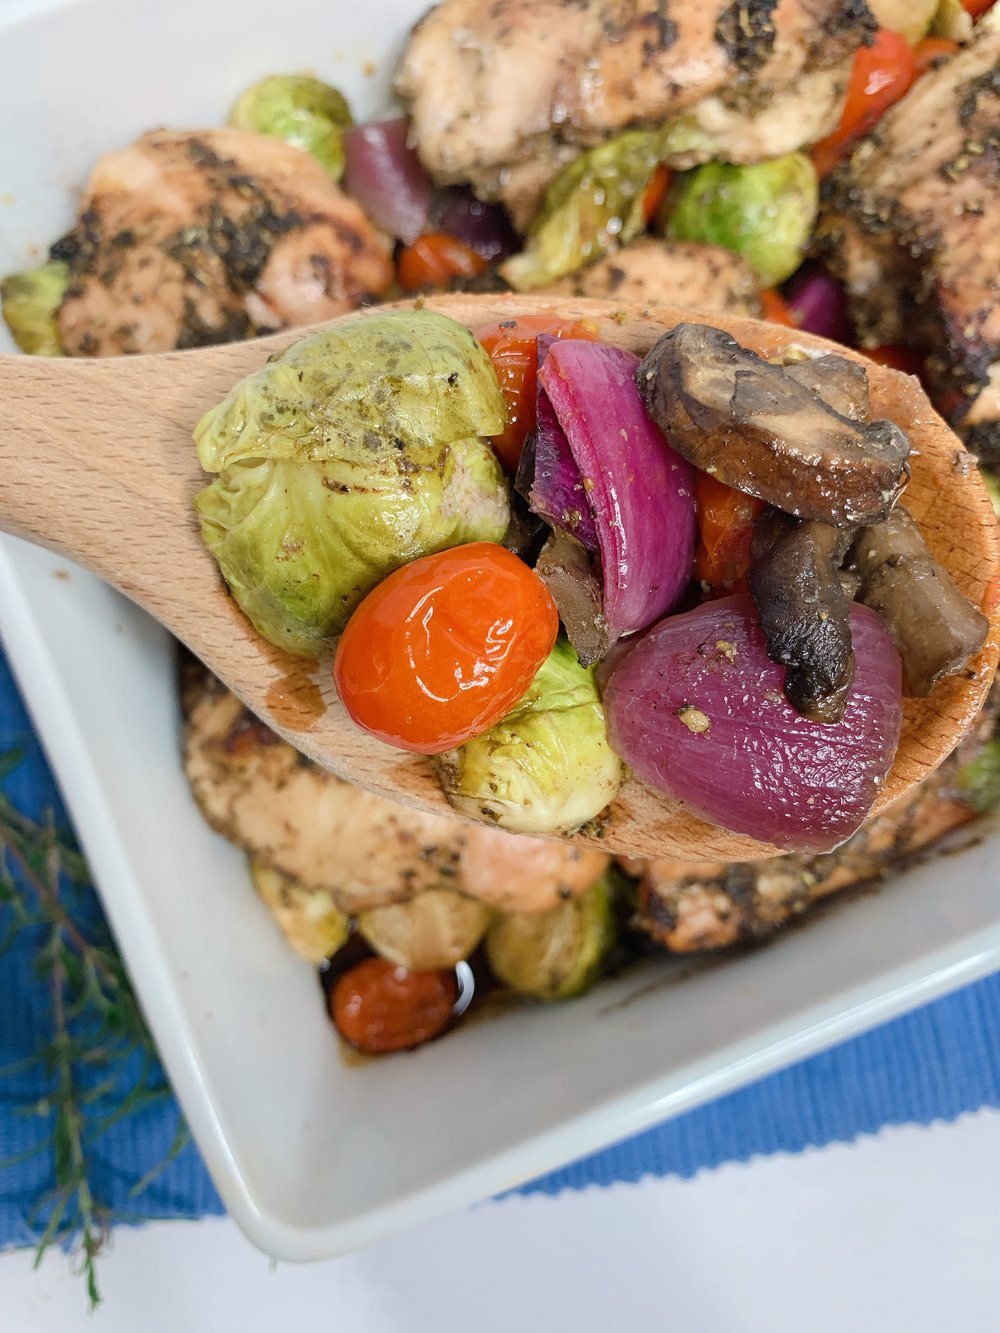 Easy Keto Friendly One-Pot Balsamic Chicken and Roasted Veggies